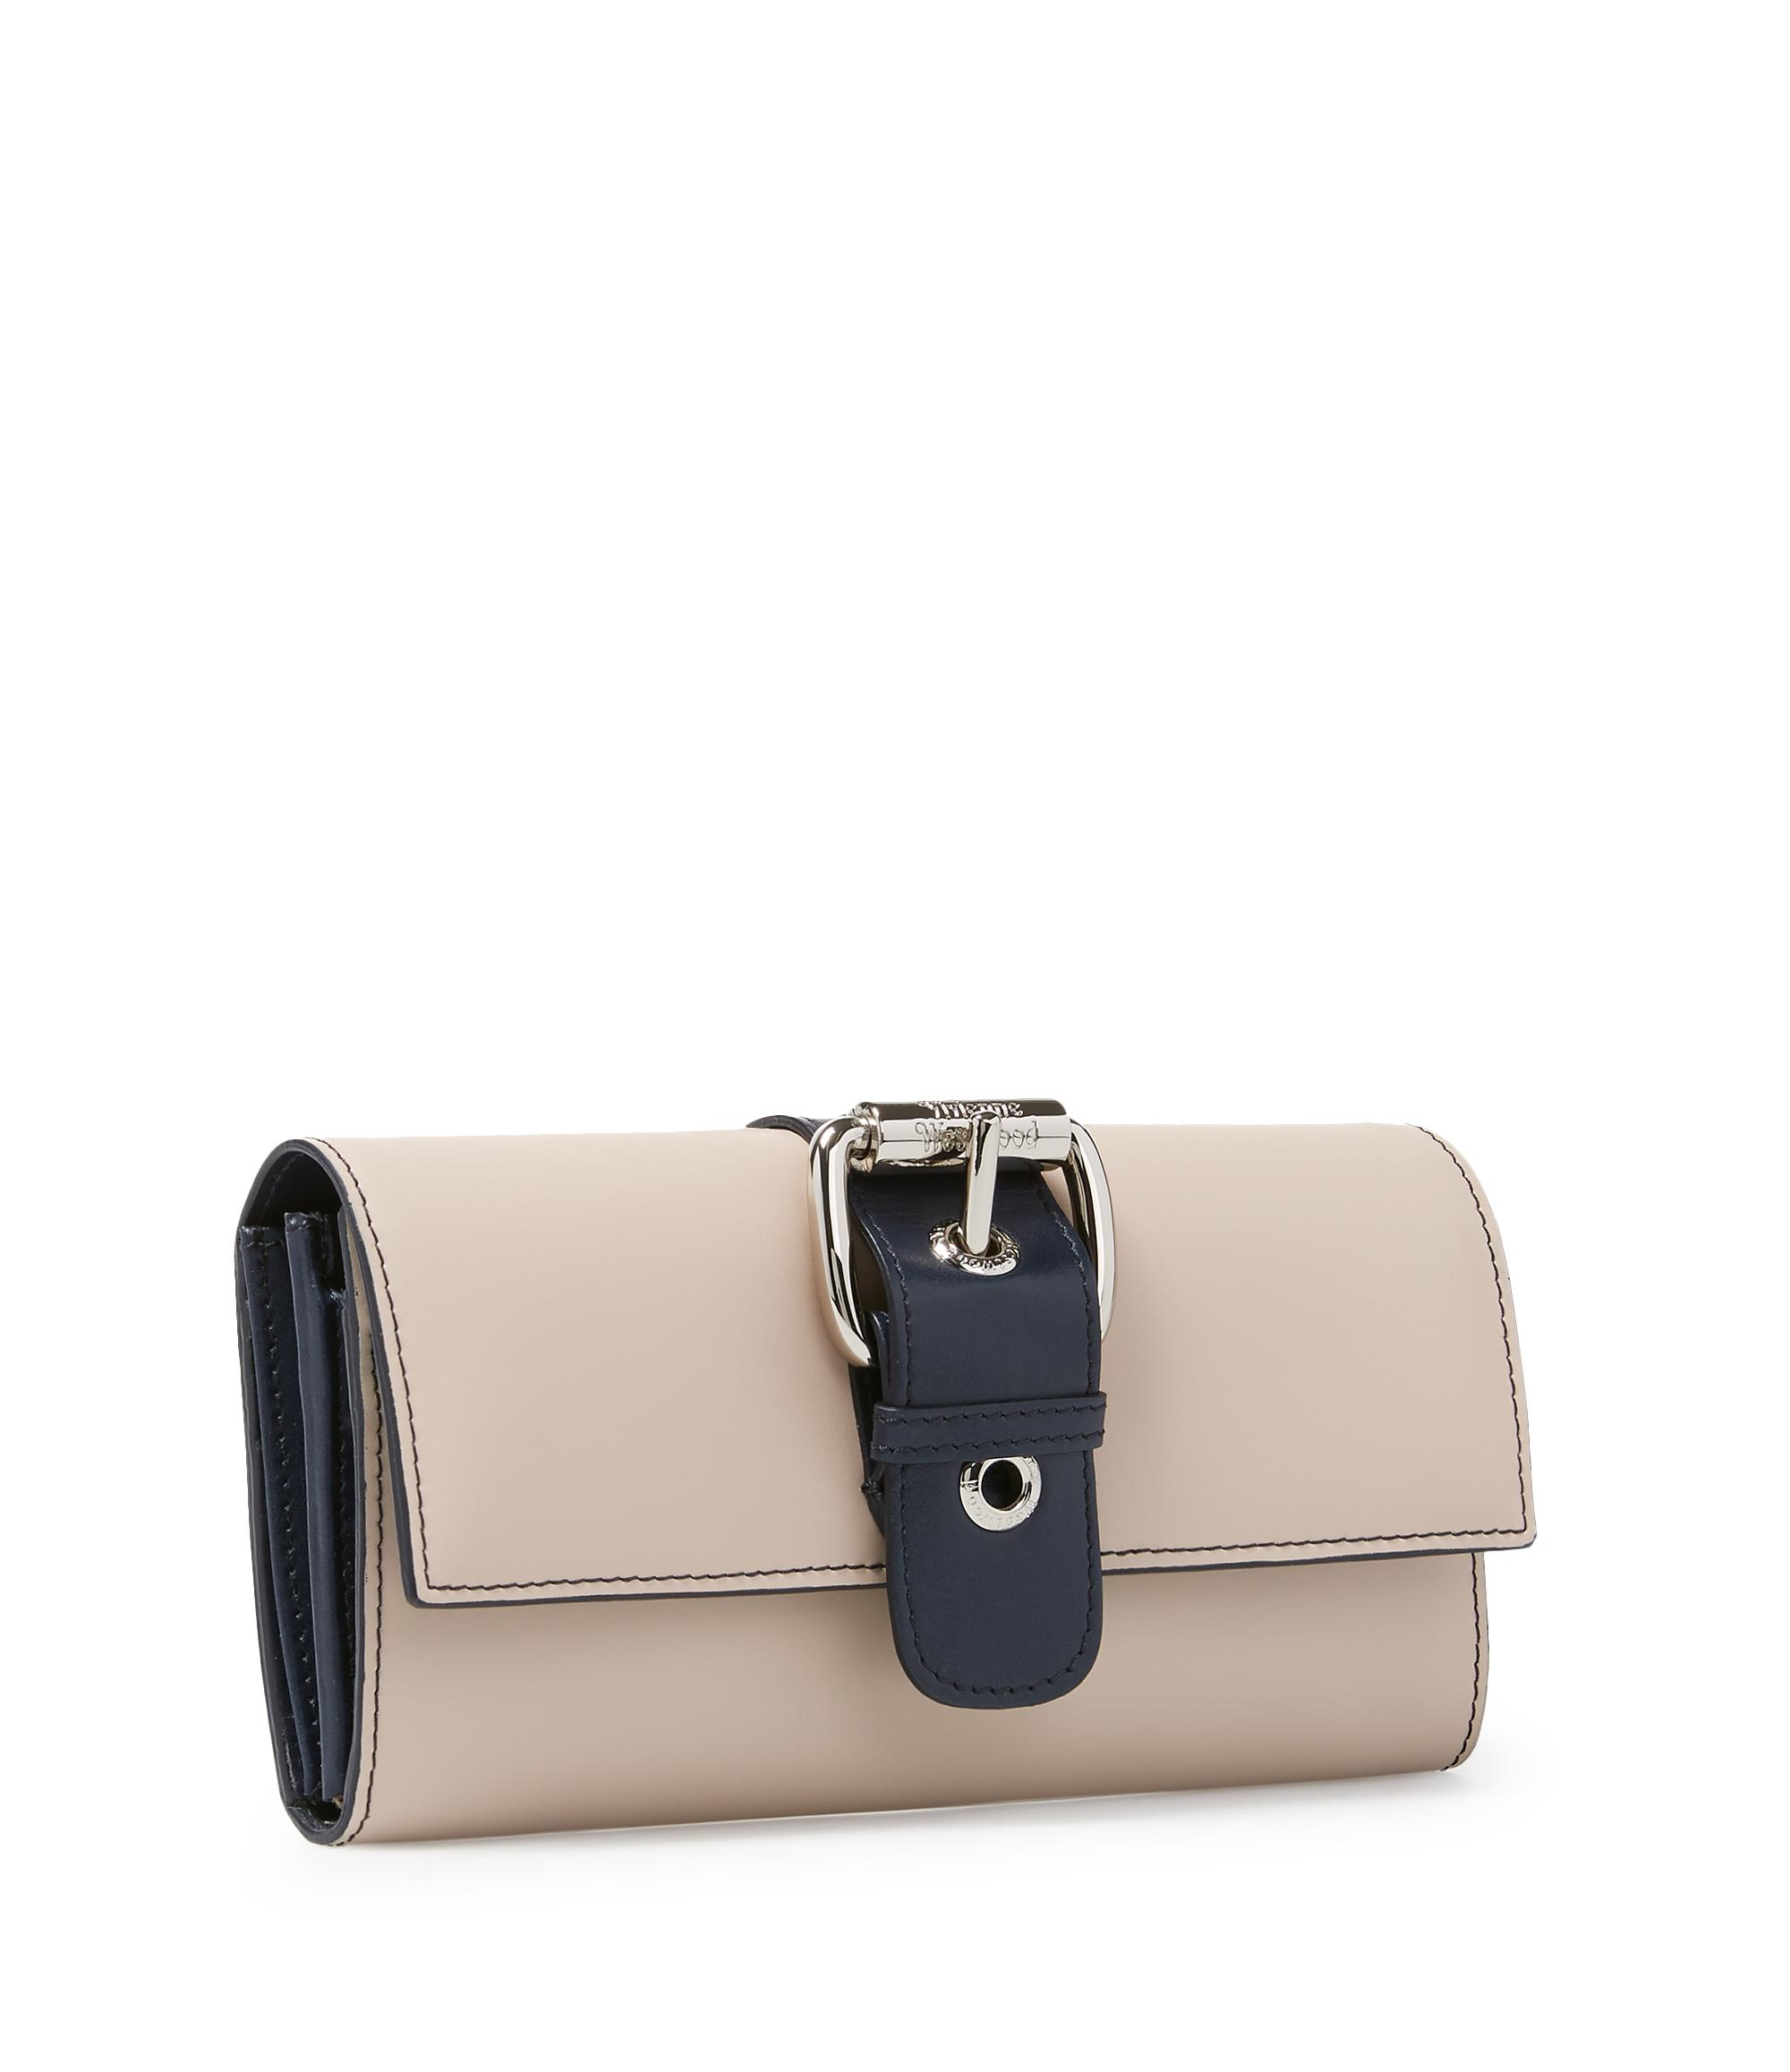 974f55f259 Vivienne Westwood Alex Long Wallet 321416 Nude in Natural - Lyst